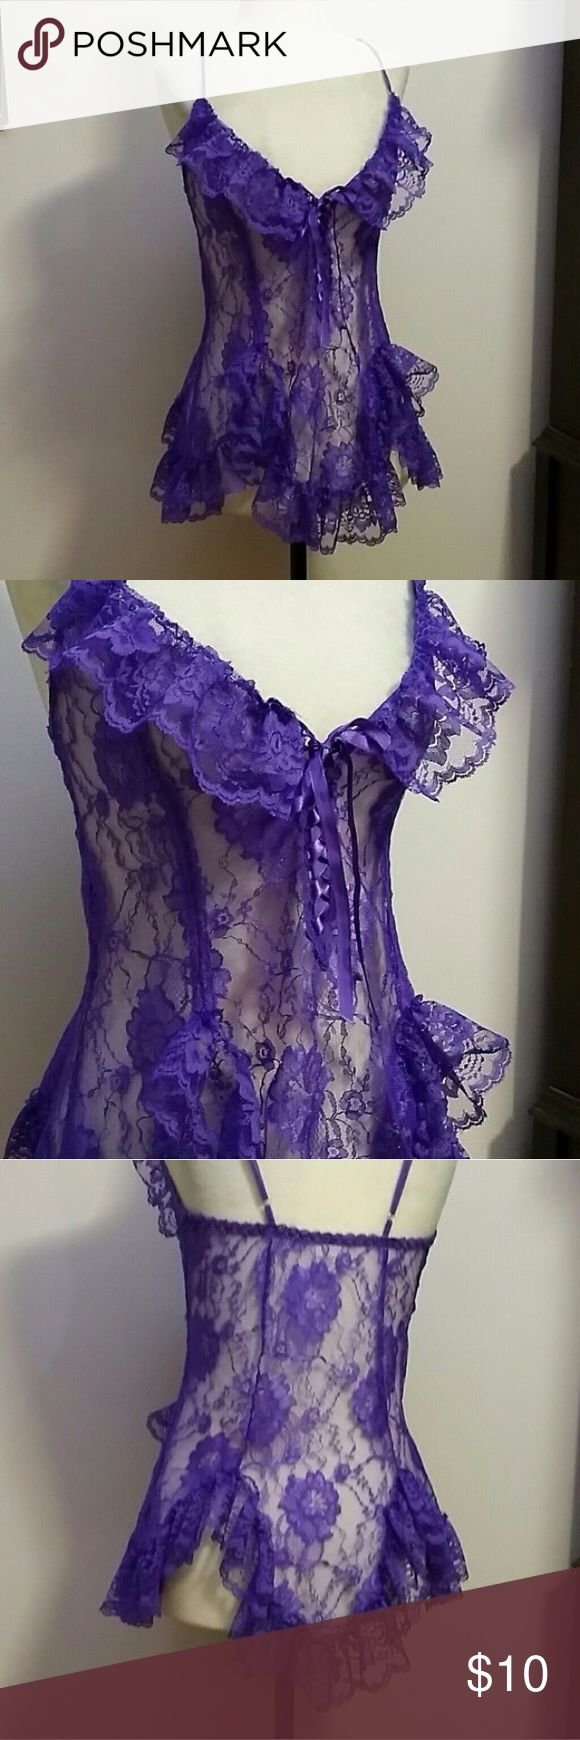 Frederick's Purple Lace Chemise Lingerie Dress Cute for a rave or festival event. From fredericks of hollywood only worn to try on. Size medium. Pretty purplish blue color. Frederick's of Hollywood Intimates & Sleepwear Chemises & Slips